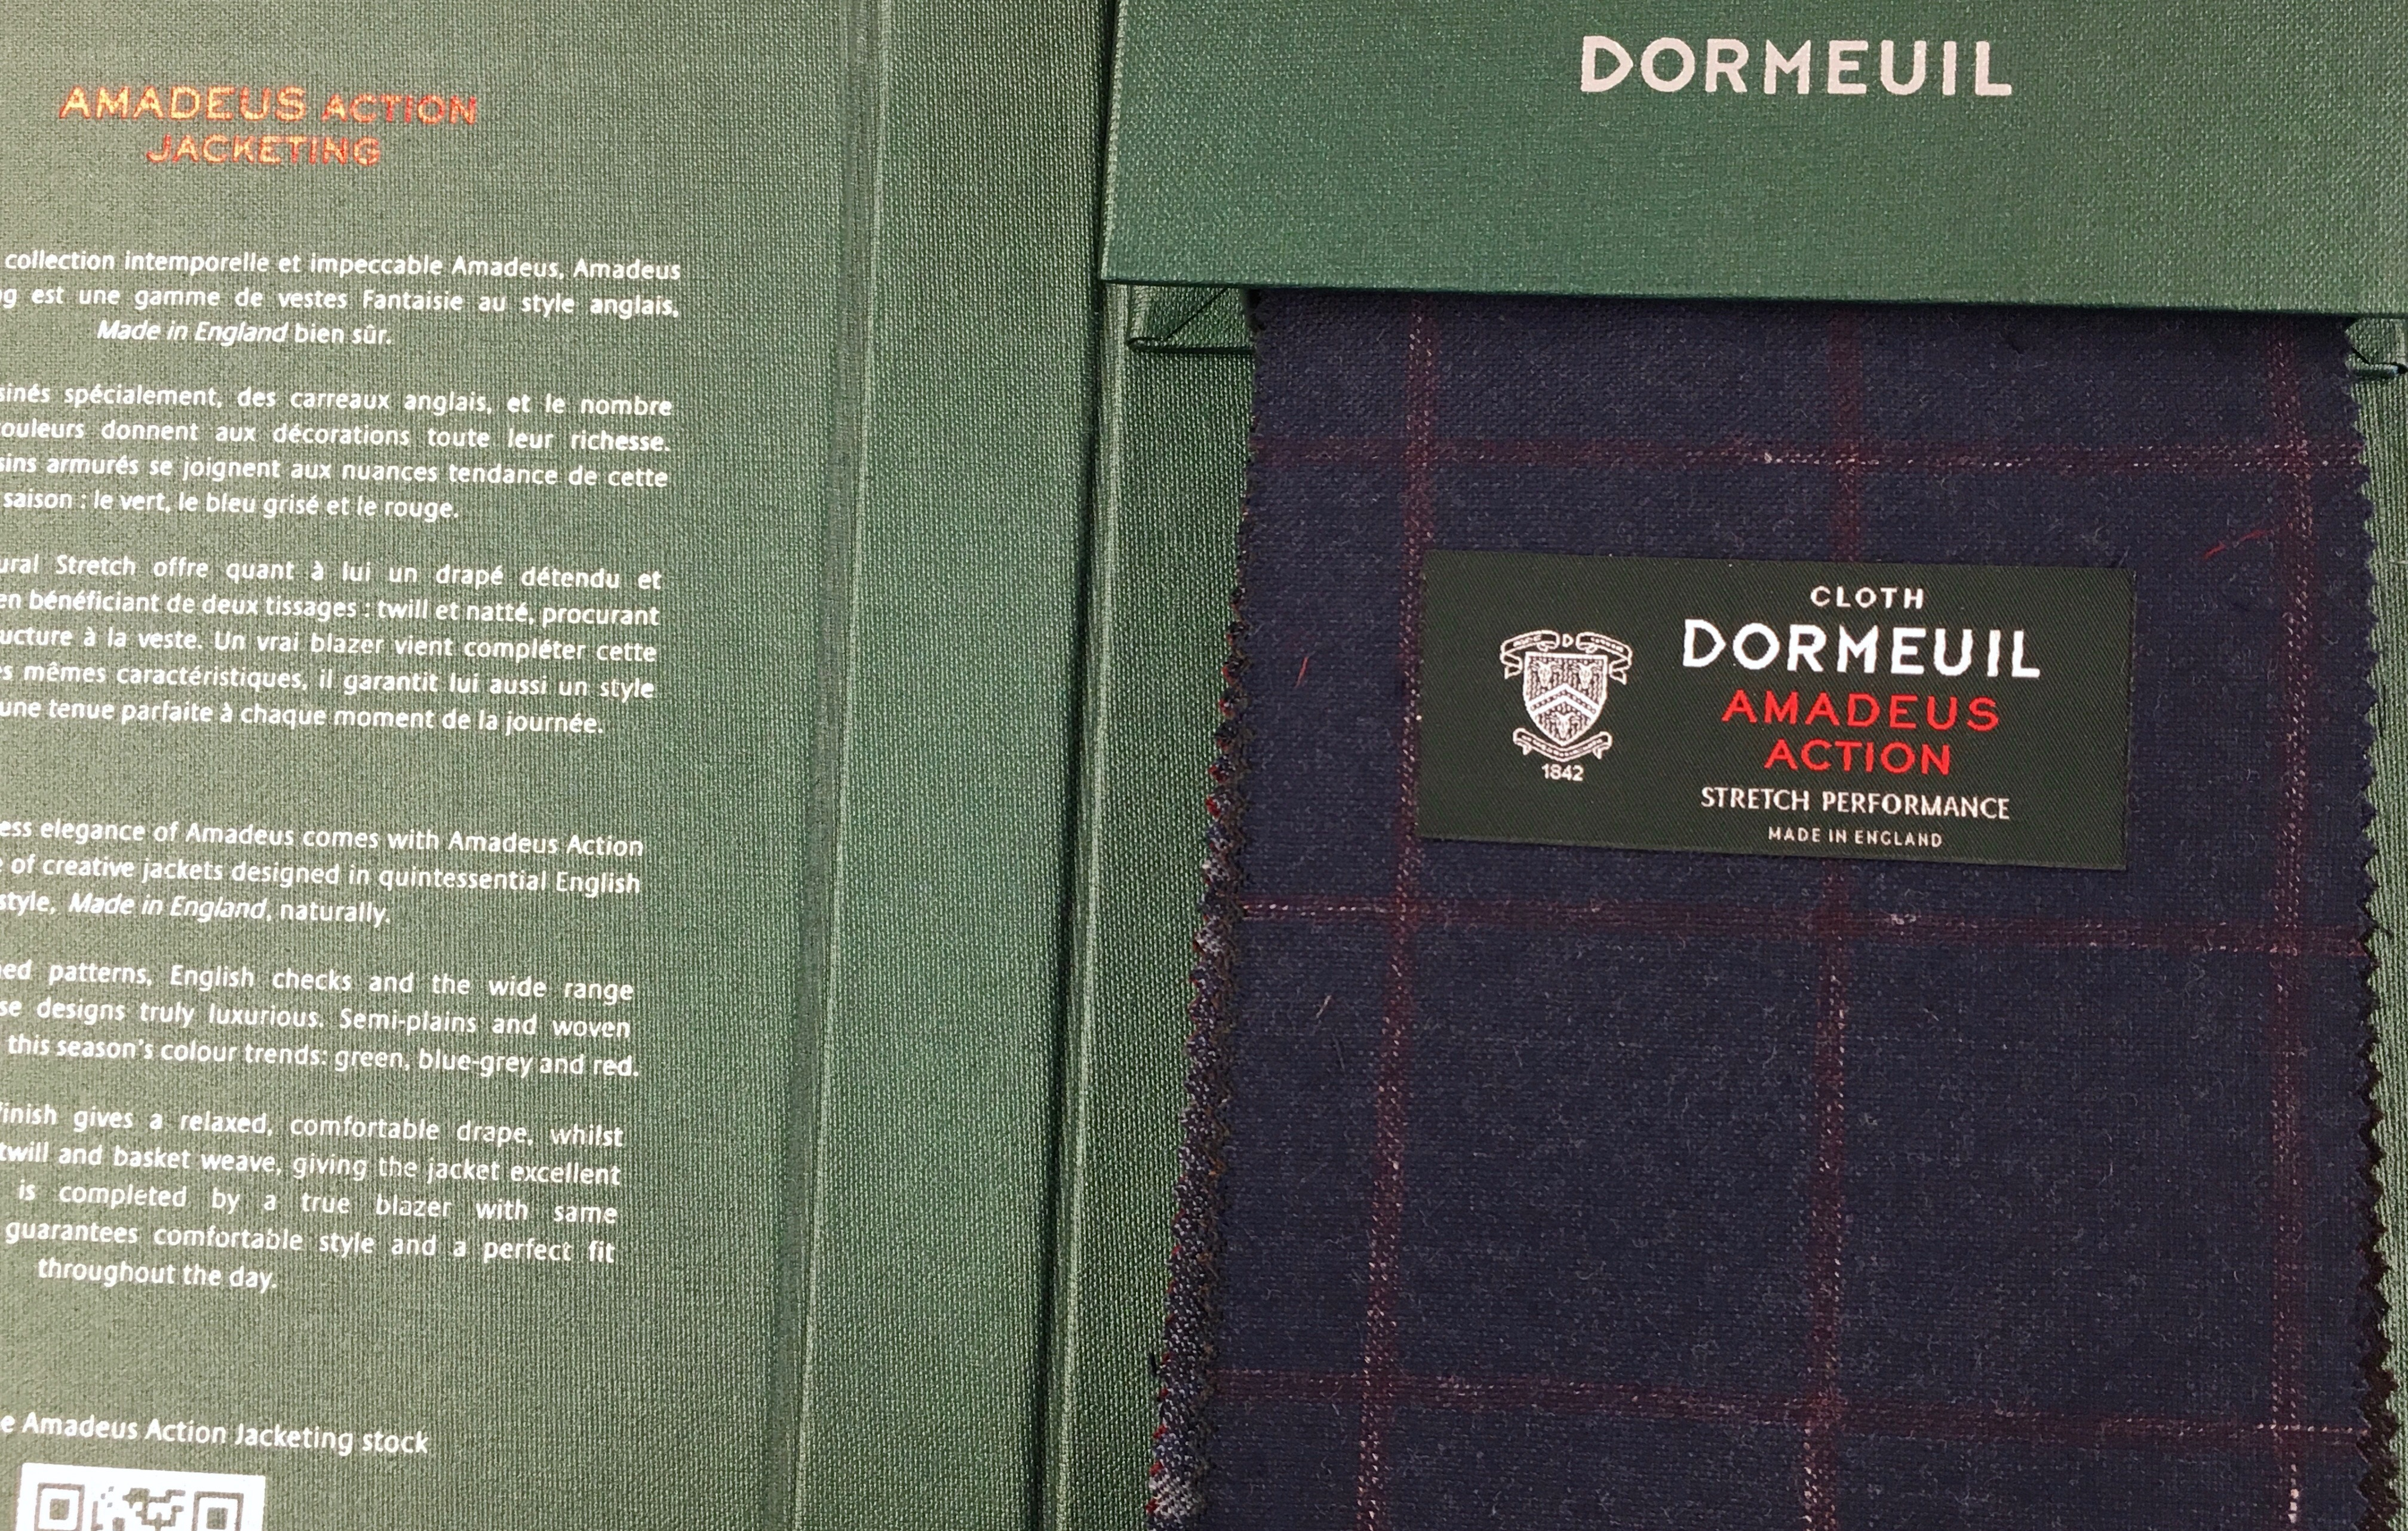 DORMEUIL/ドーメル☆19AW新作『AMADEUS ACTION JACKETING』